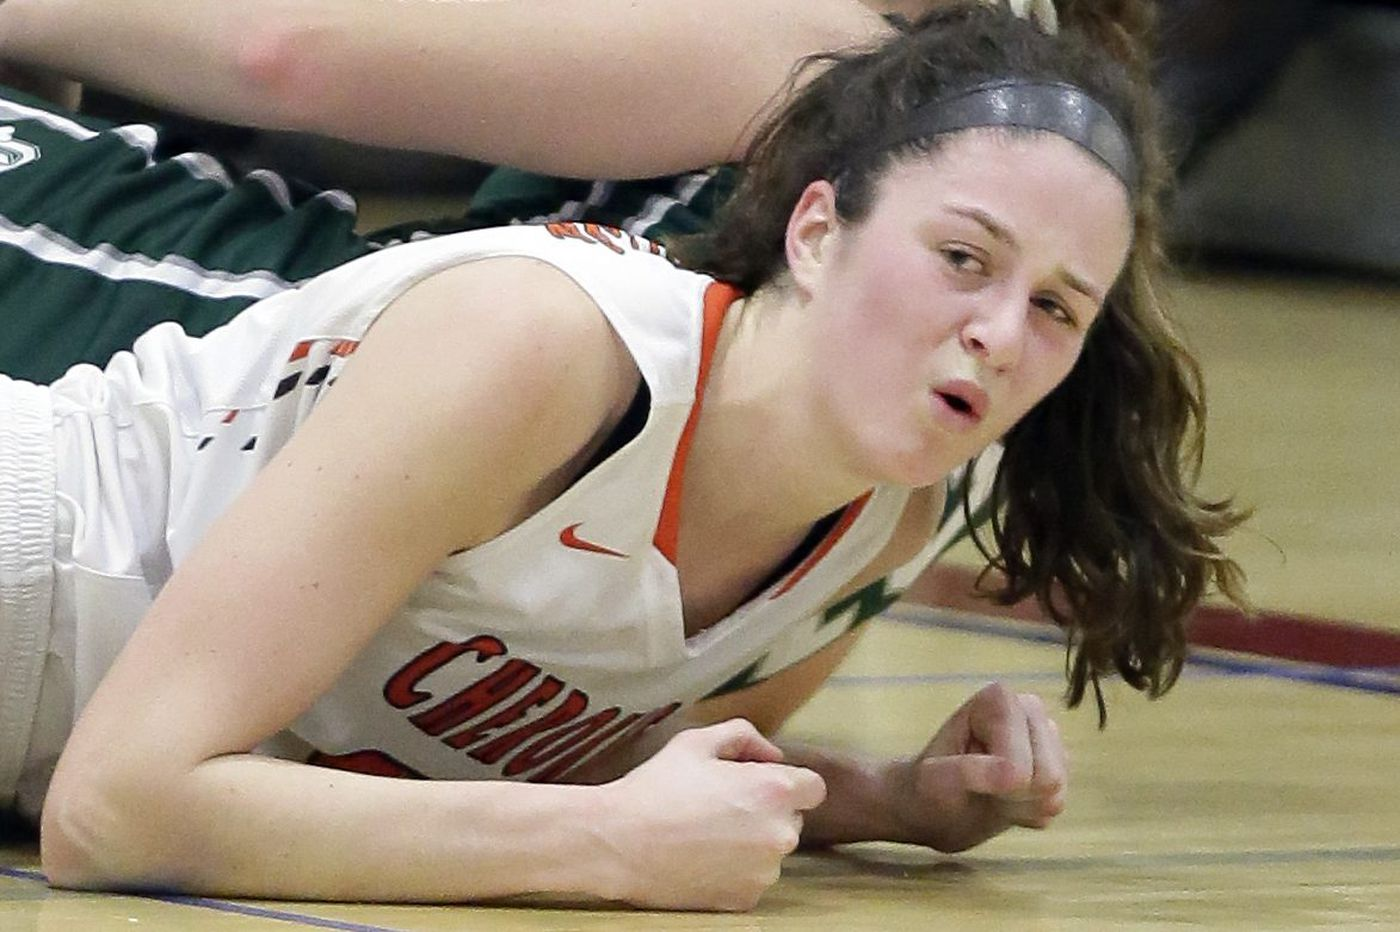 Ava Therien is the Cherokee girls' basketball leader now